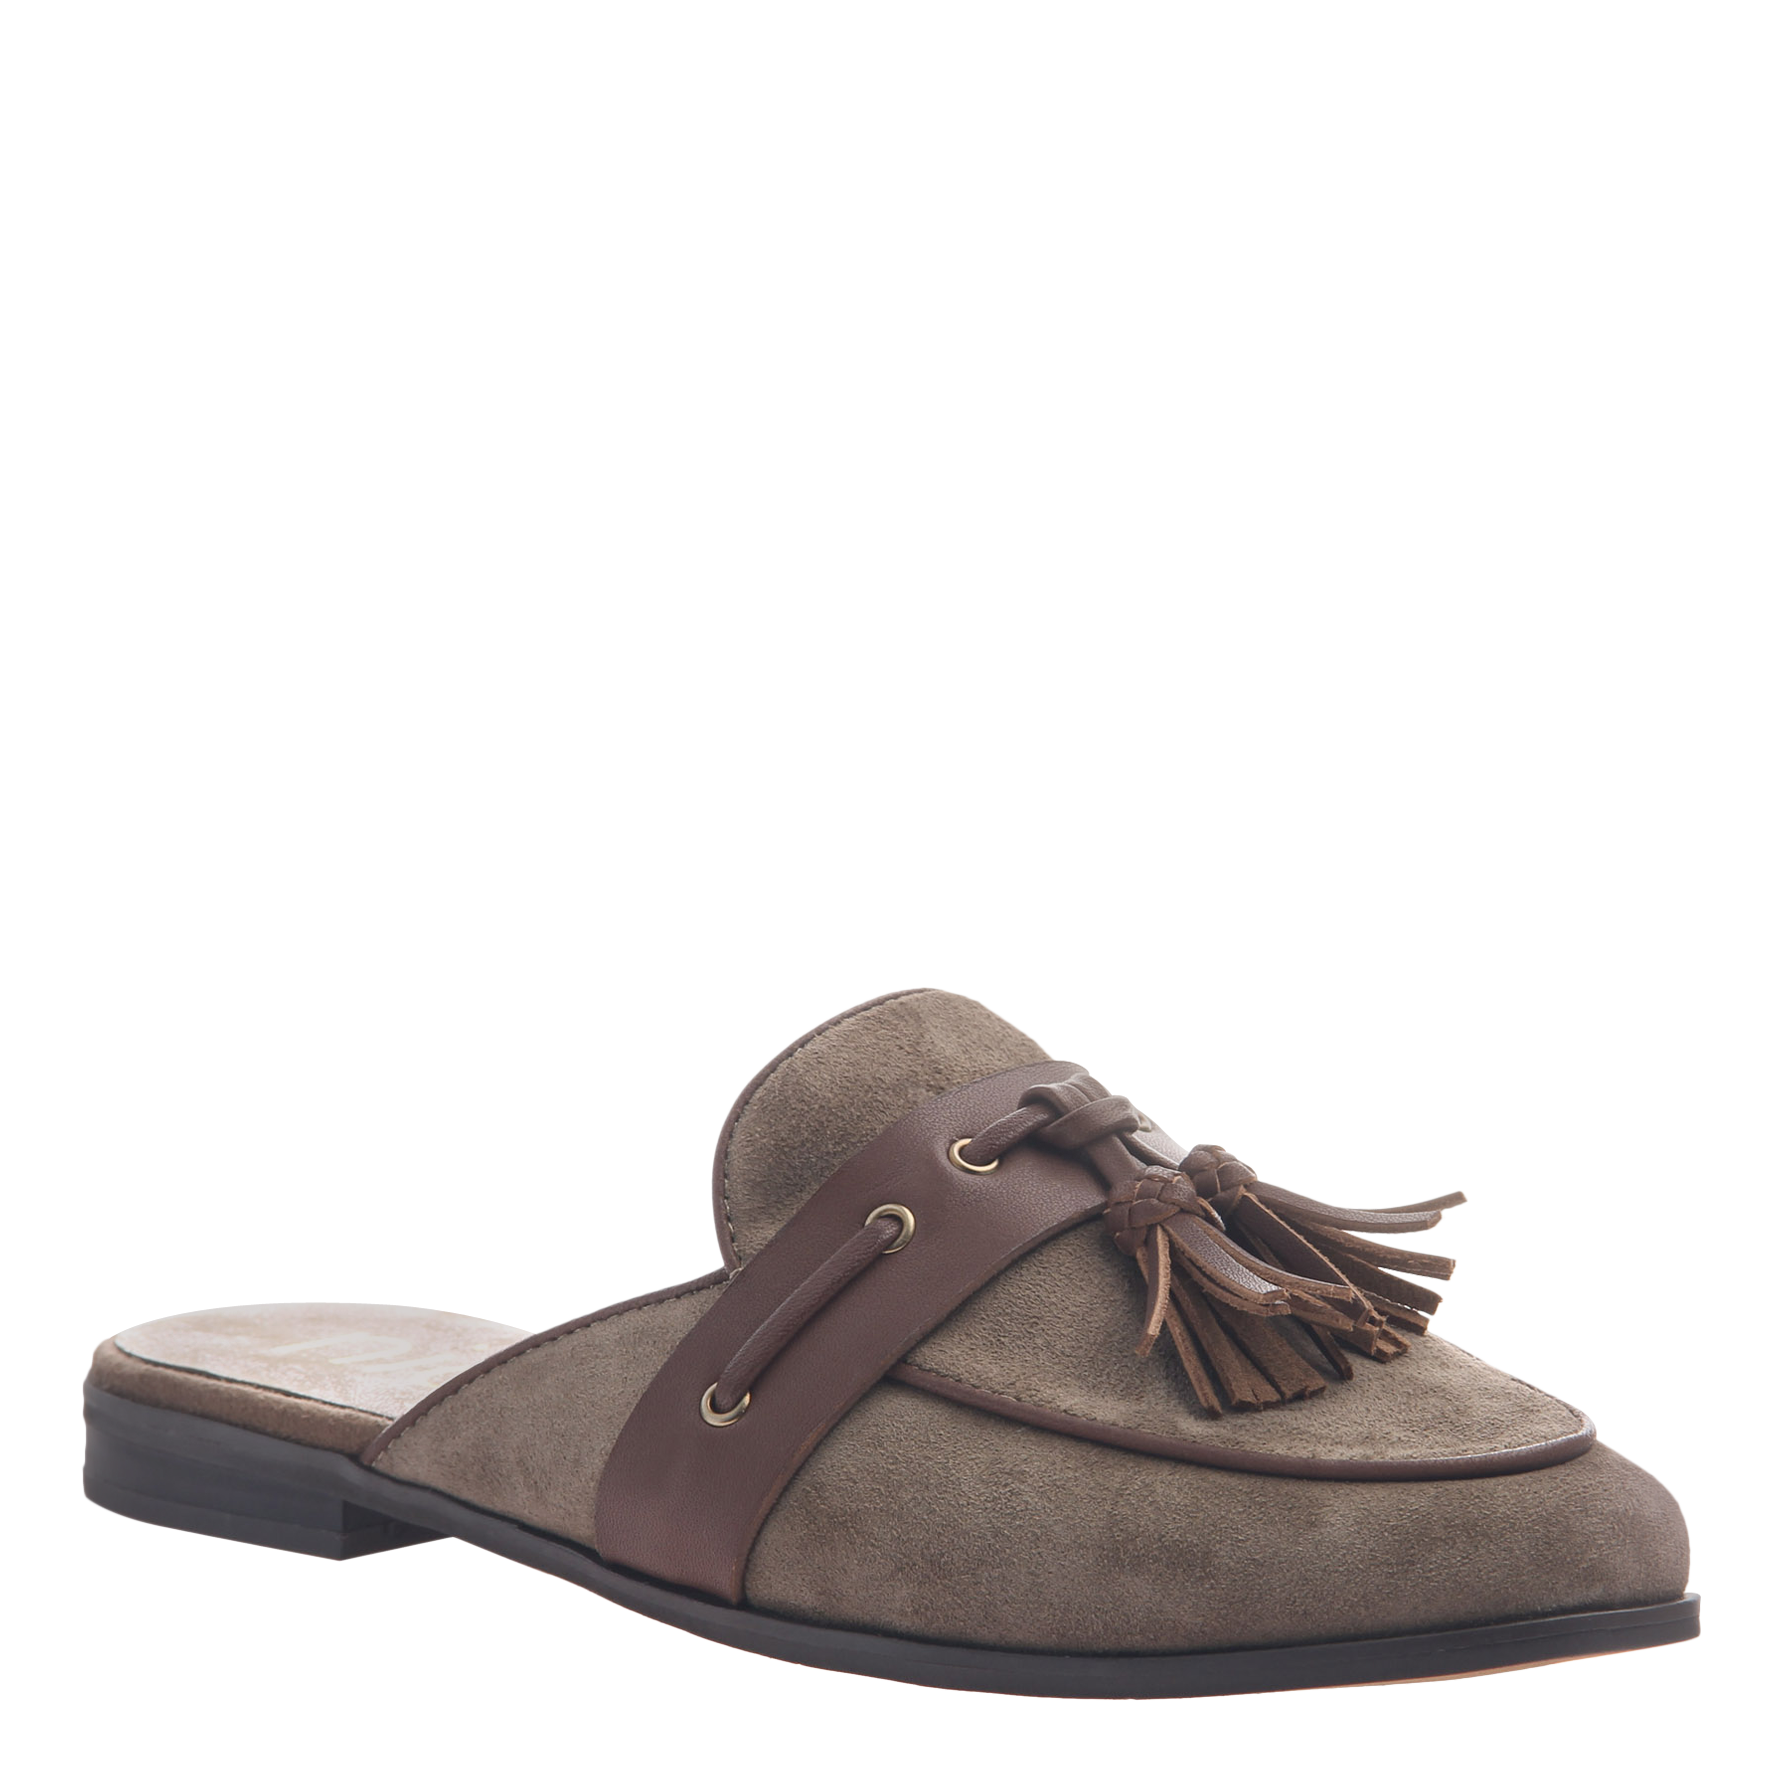 Womens slip on loafer Yulia in otter